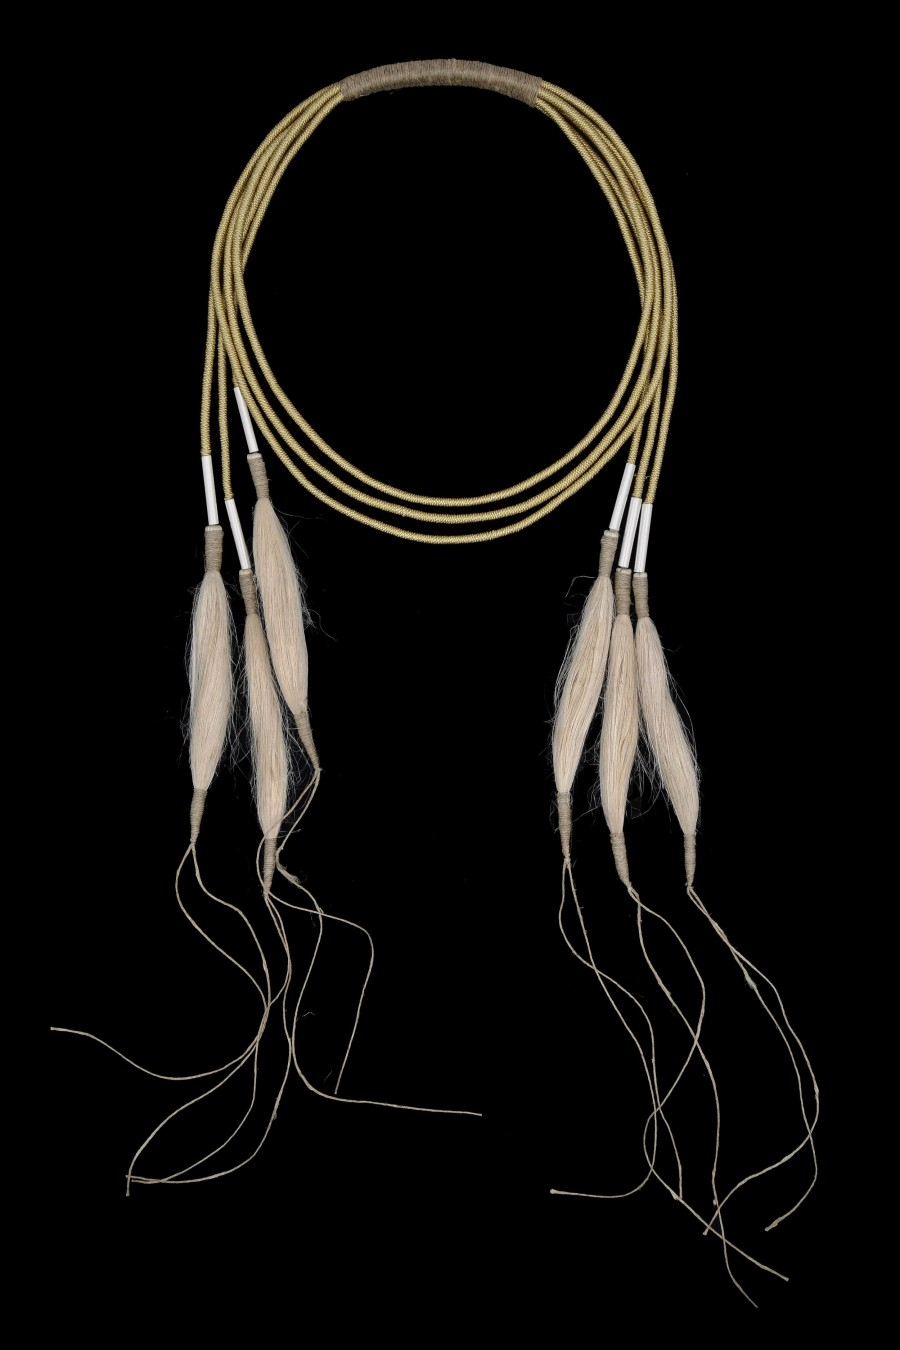 Golden thread jute and stainless steel